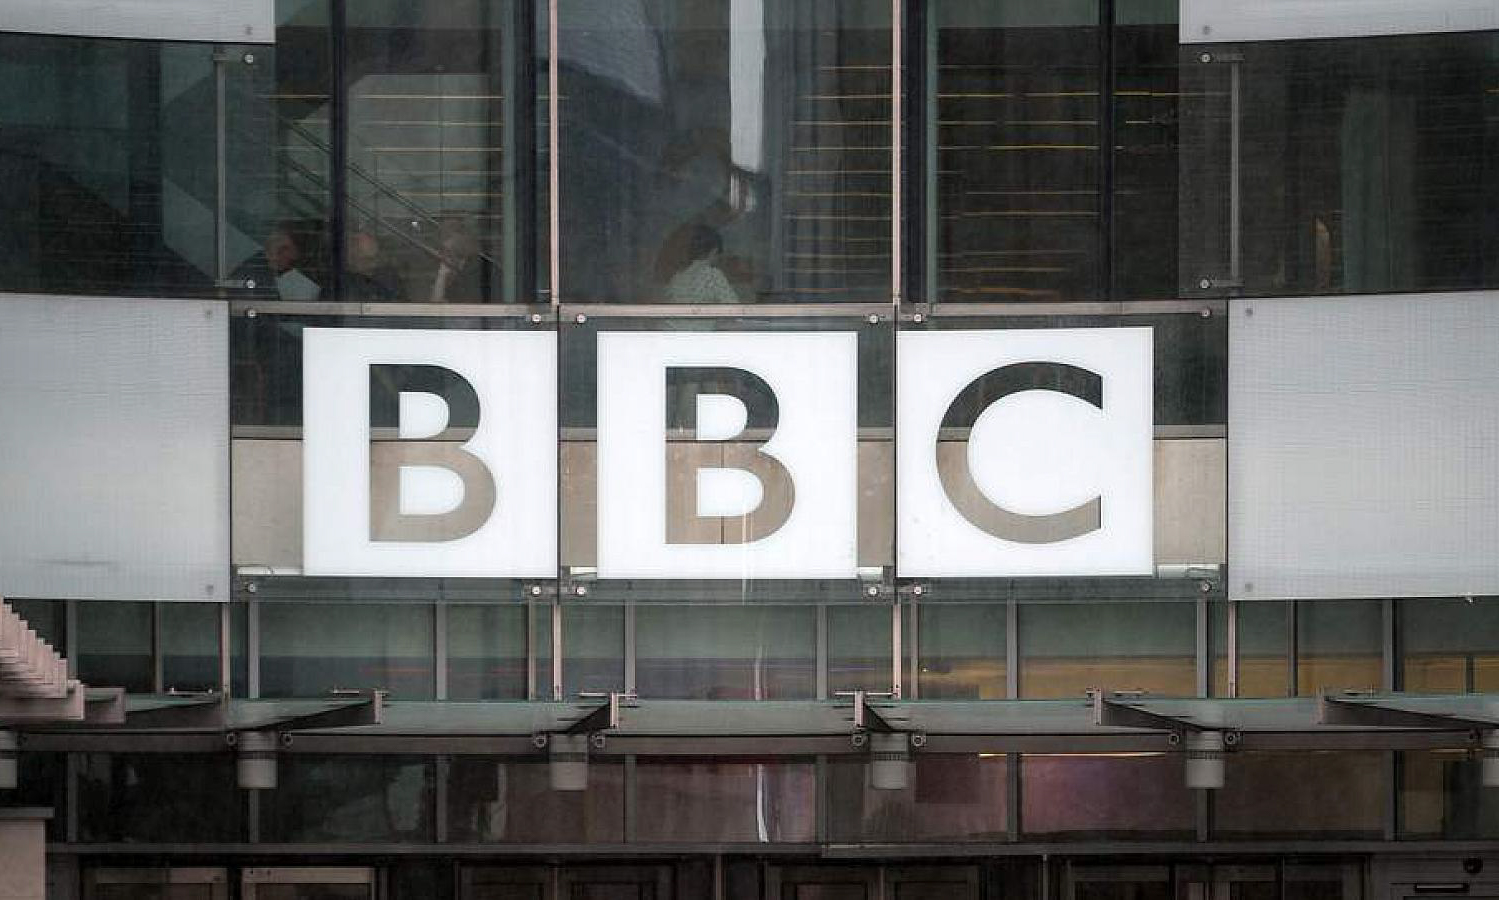 Major Plans by the BBC Bring More Media Jobs to the West Midlands